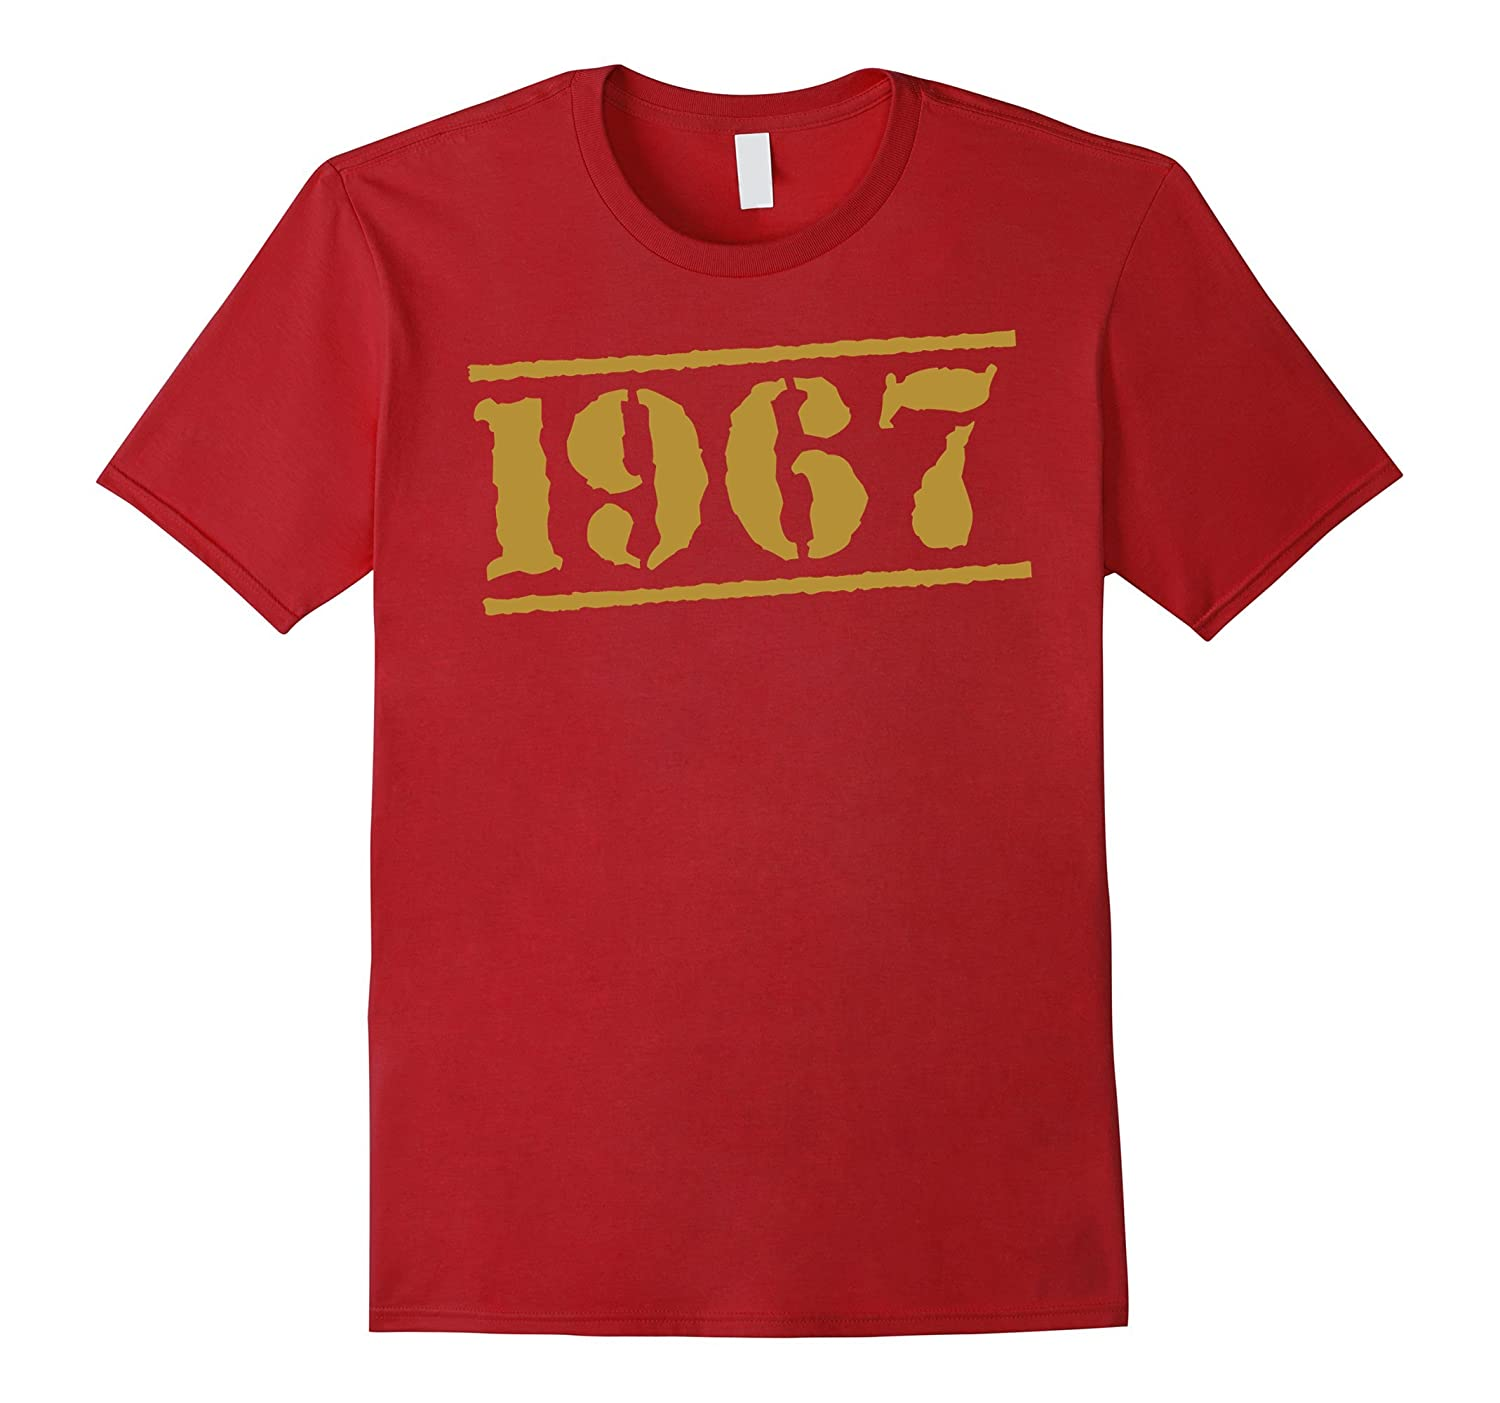 1967 50th Birthday 50 Years Old T-Shirt-FL